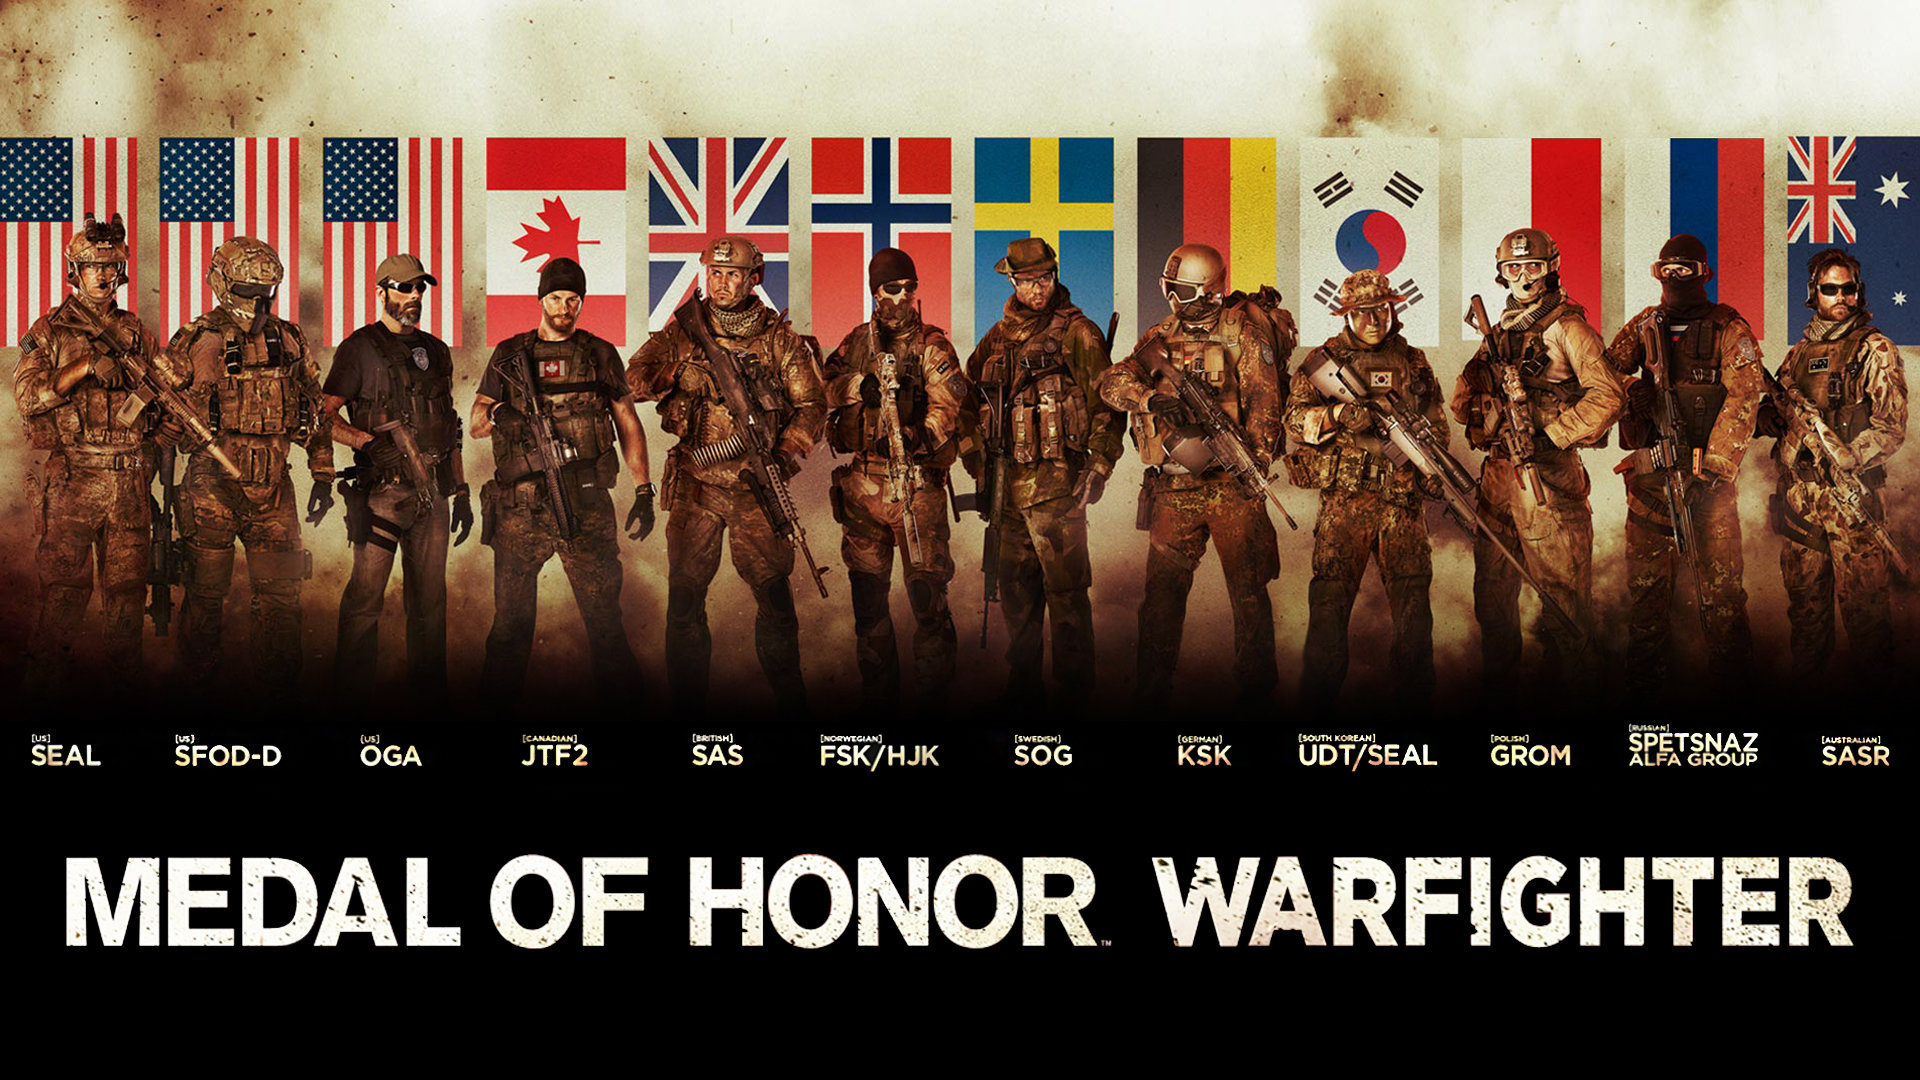 Medal Of Honor Warfighter Wallpapers 1920x1080 Full Hd 1080p